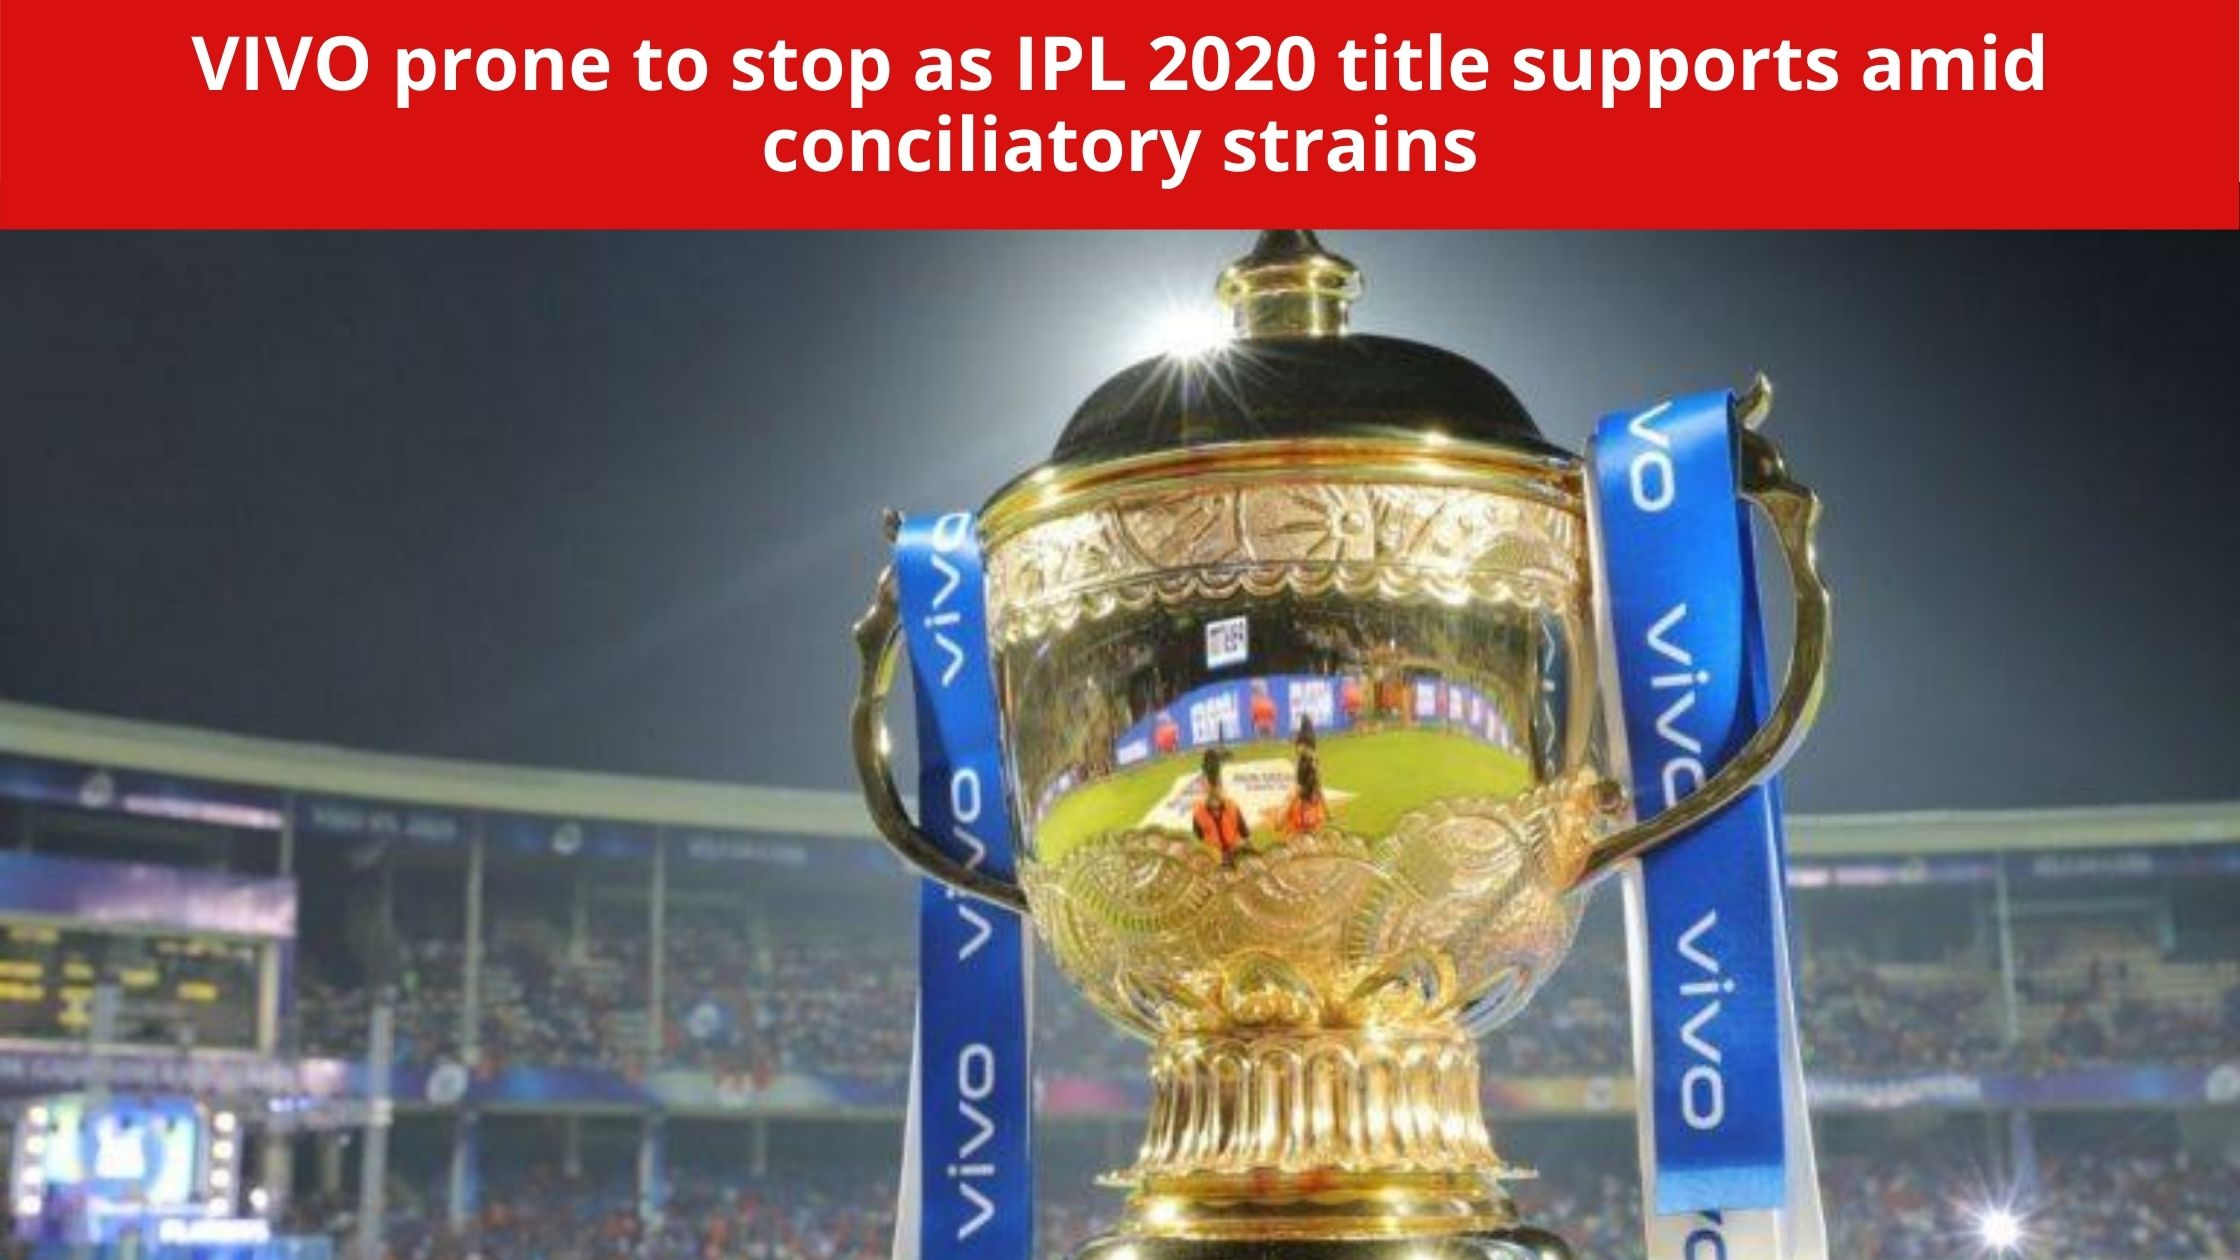 VIVO prone to stop as IPL 2020 title supports amid conciliatory strains